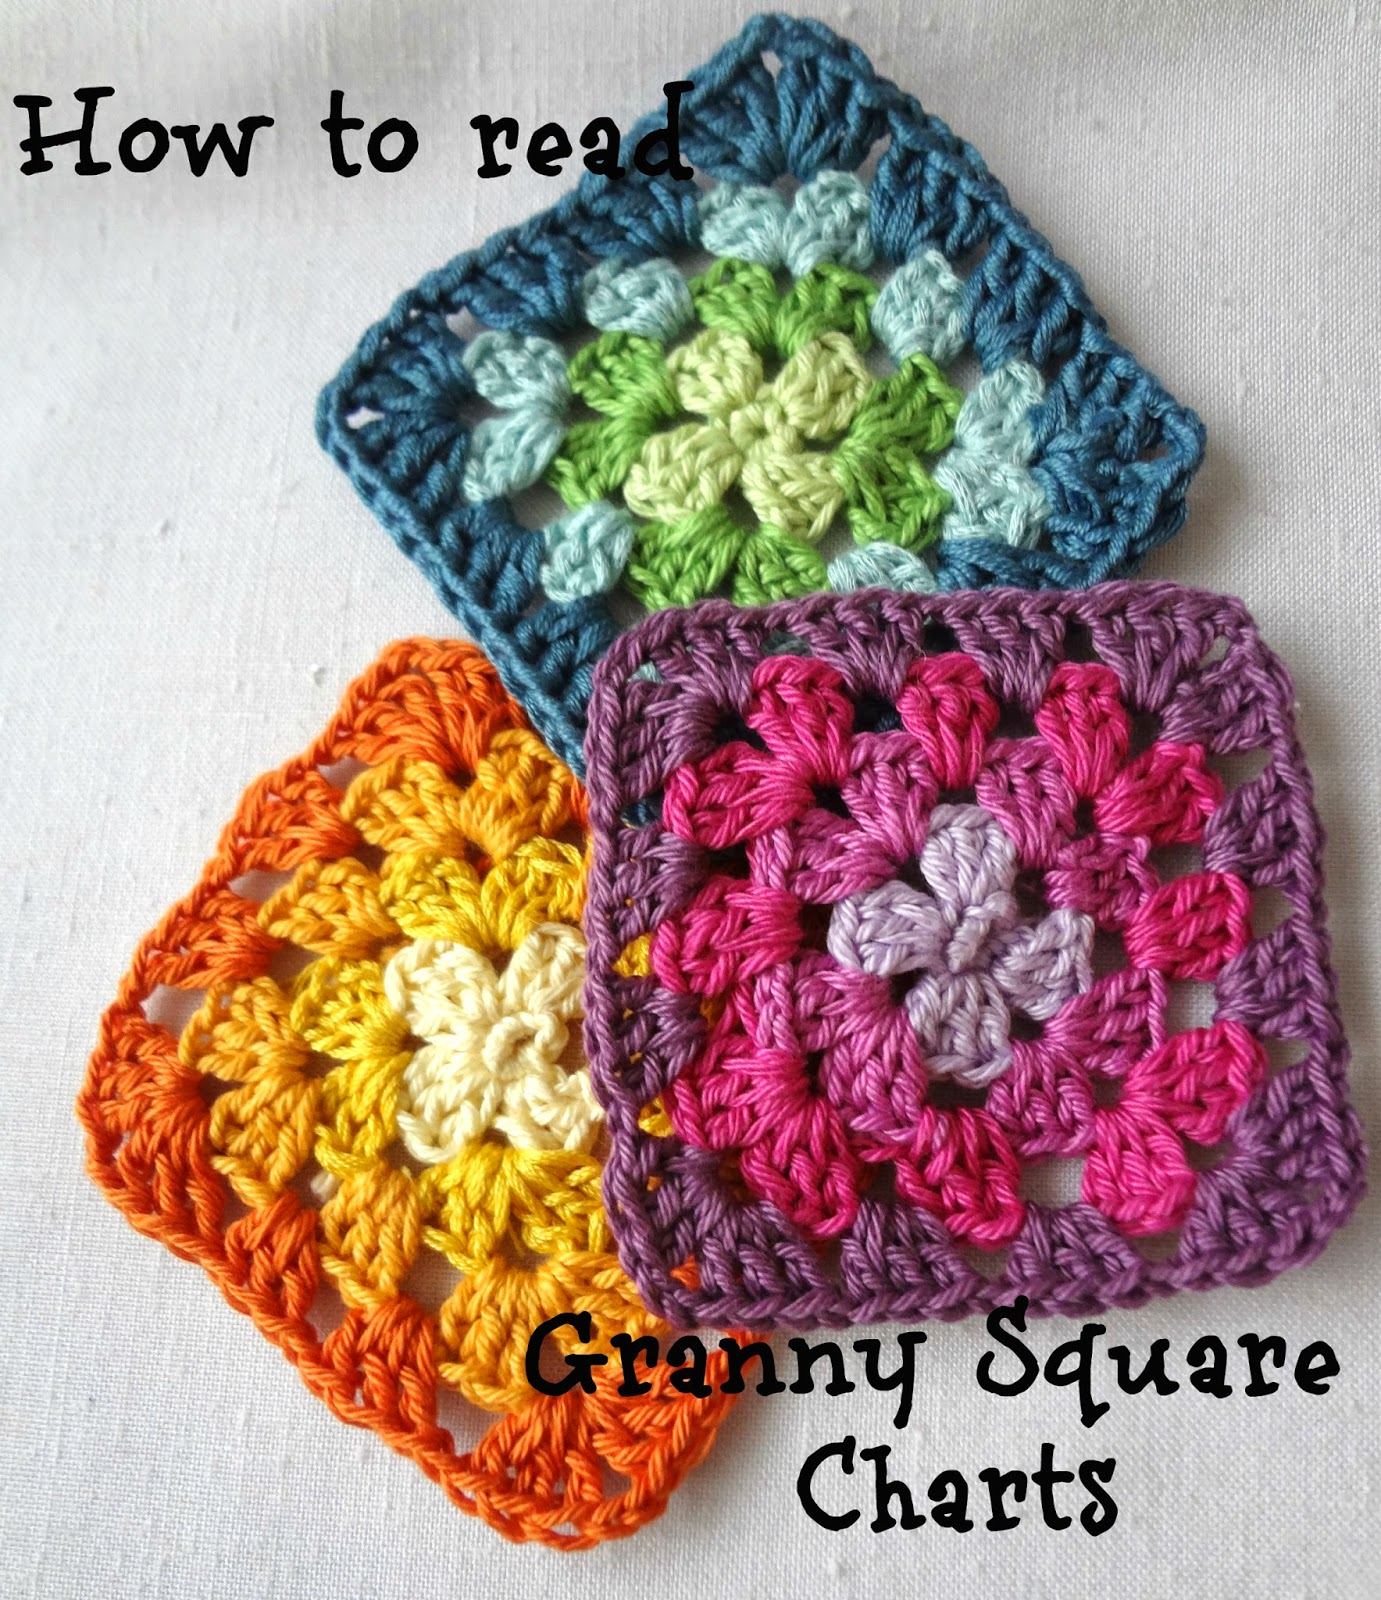 Little treasures how to read granny square charts heres the second part of how to read crochet charts and for this time i chose a basic granny square pattern i have in my pinterest board this is it bankloansurffo Image collections